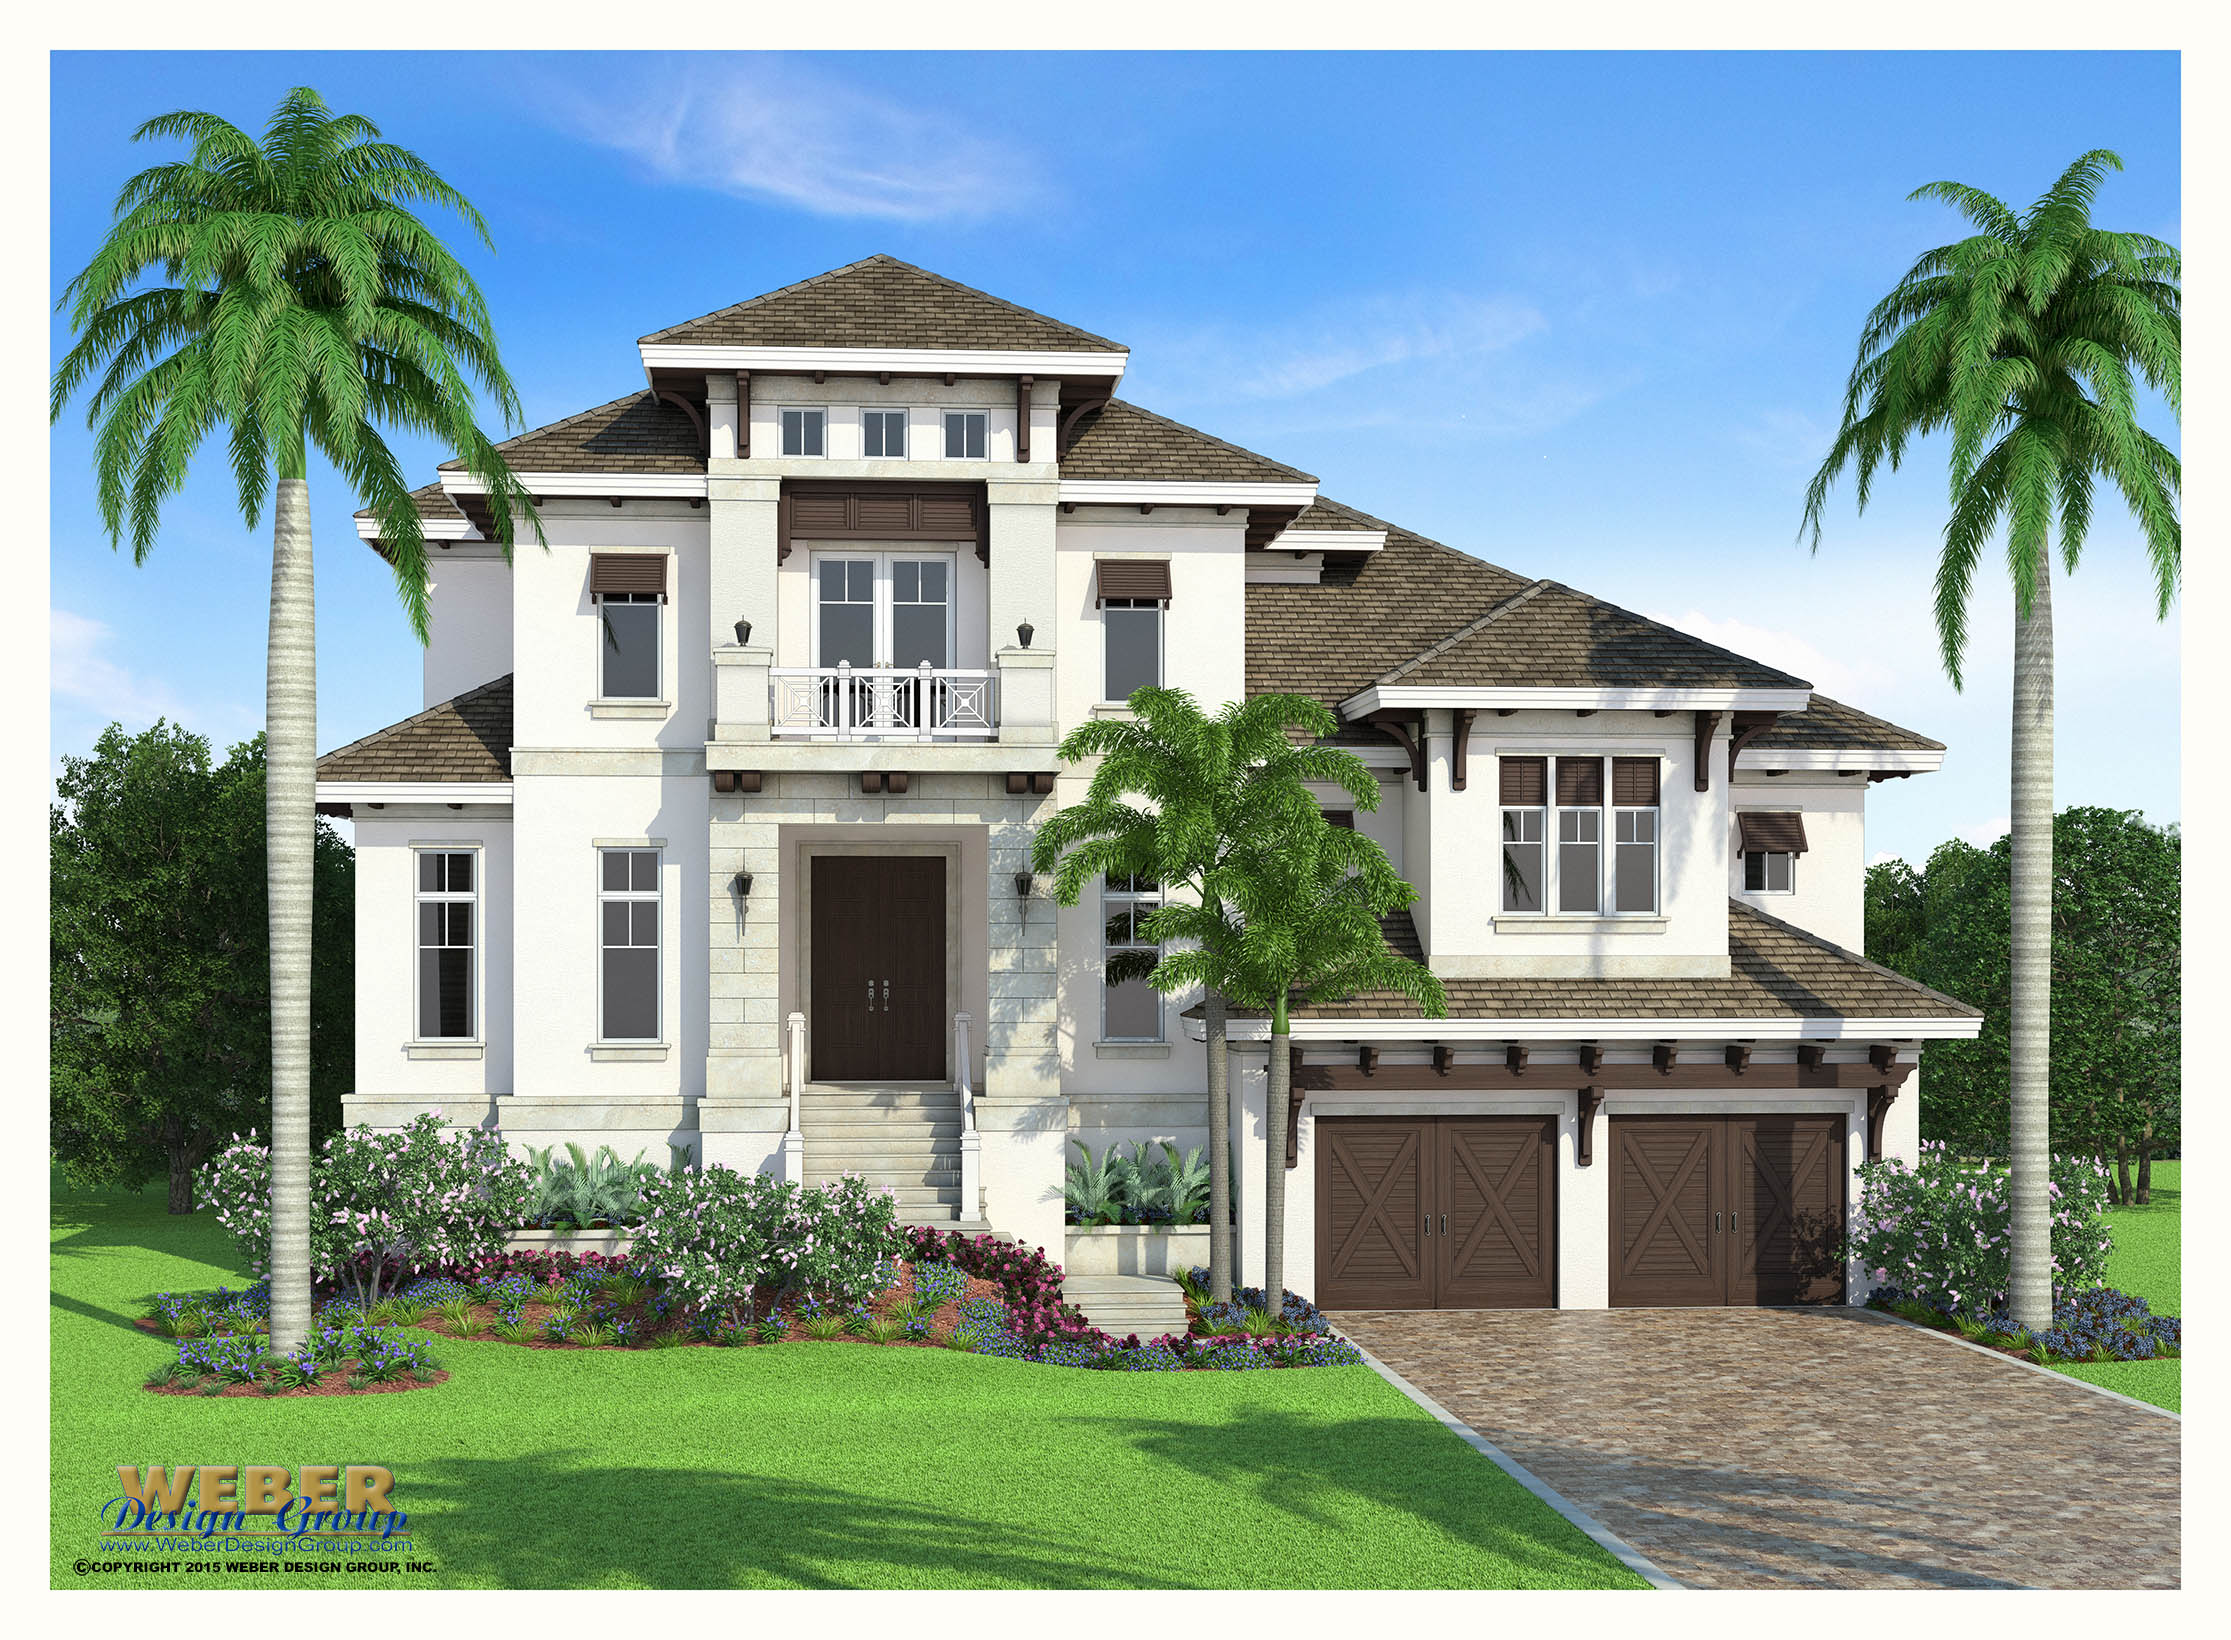 West indies architecture san souci home plan weber for West indies house plans